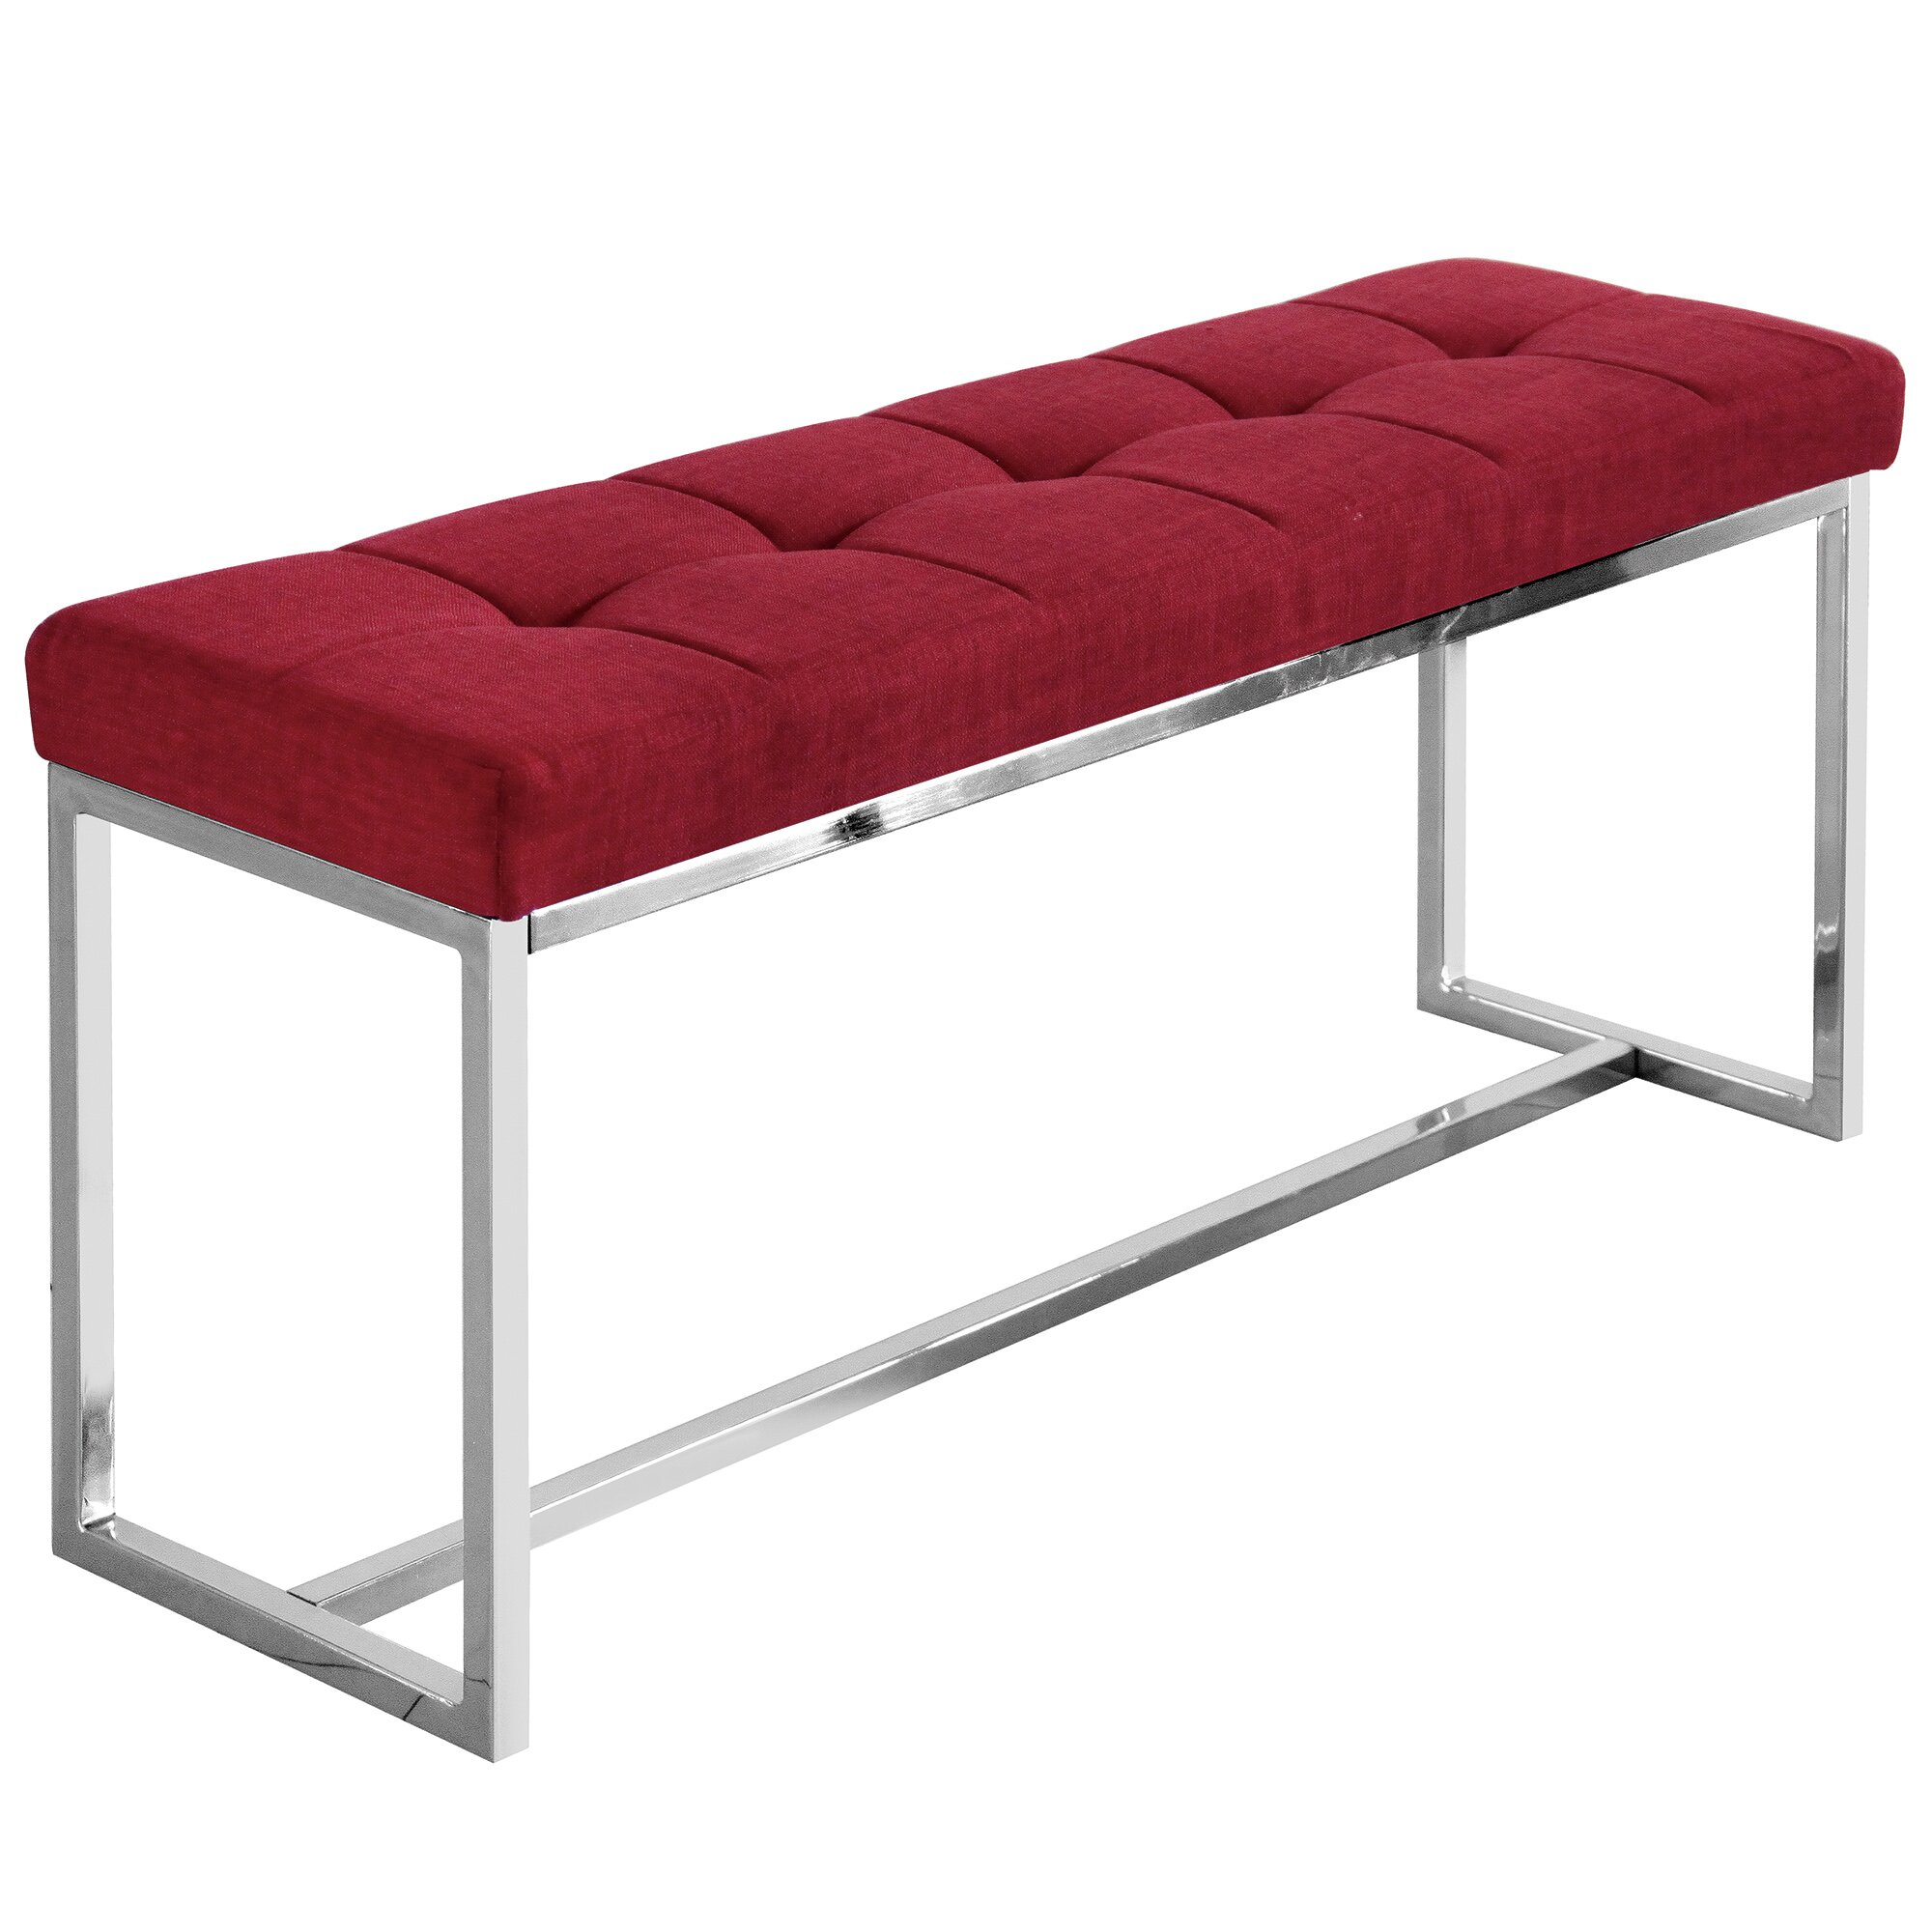 Nspire Upholstered Bedroom Bench Reviews Wayfair